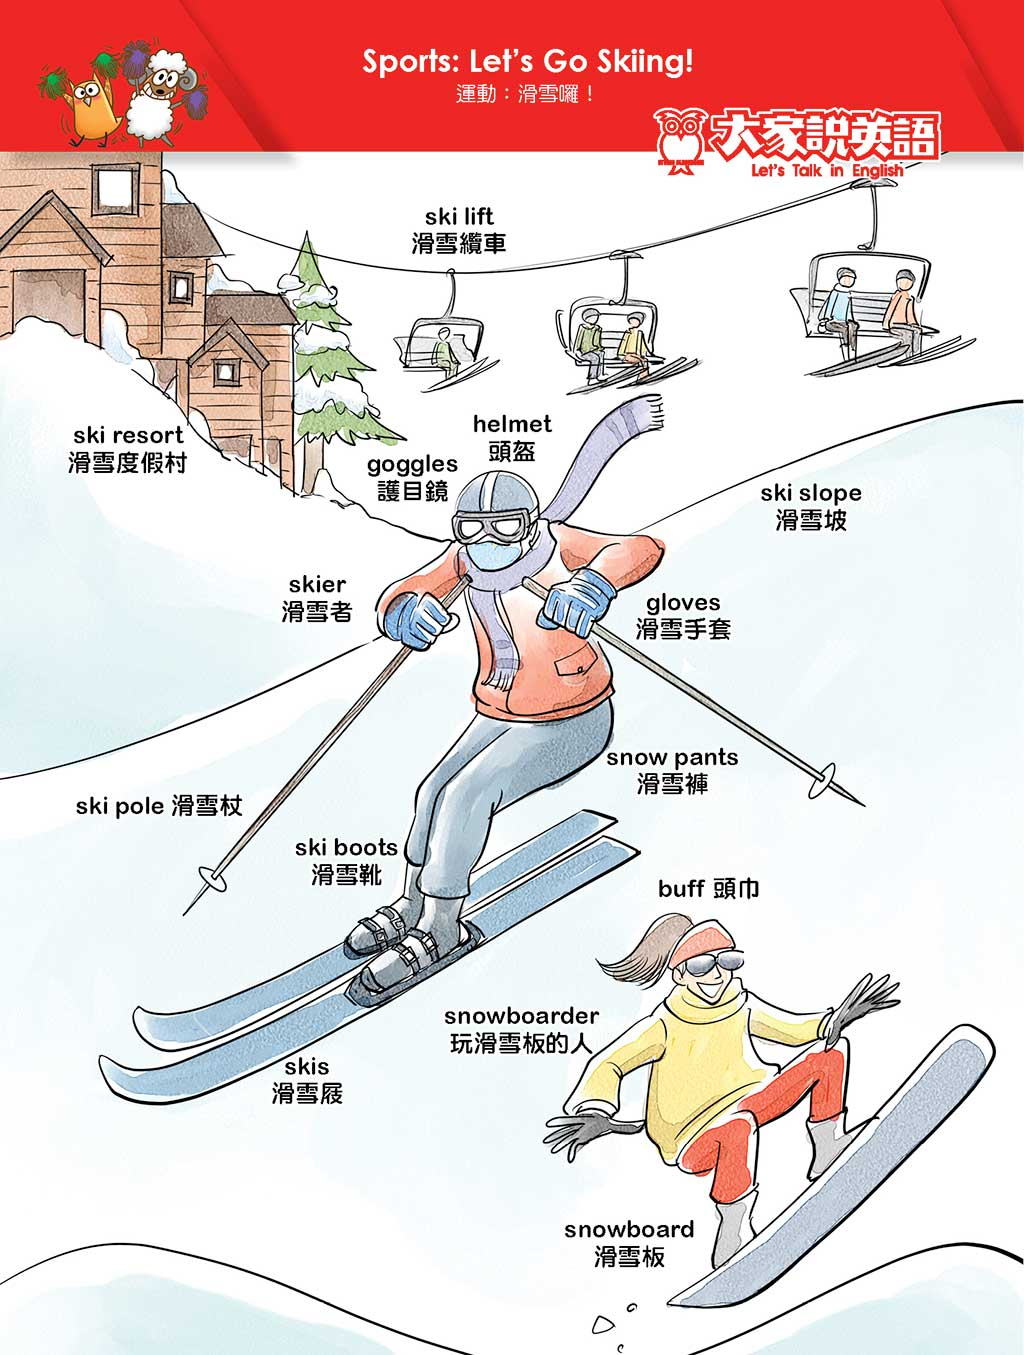 Sports: Let's Go Skiing!